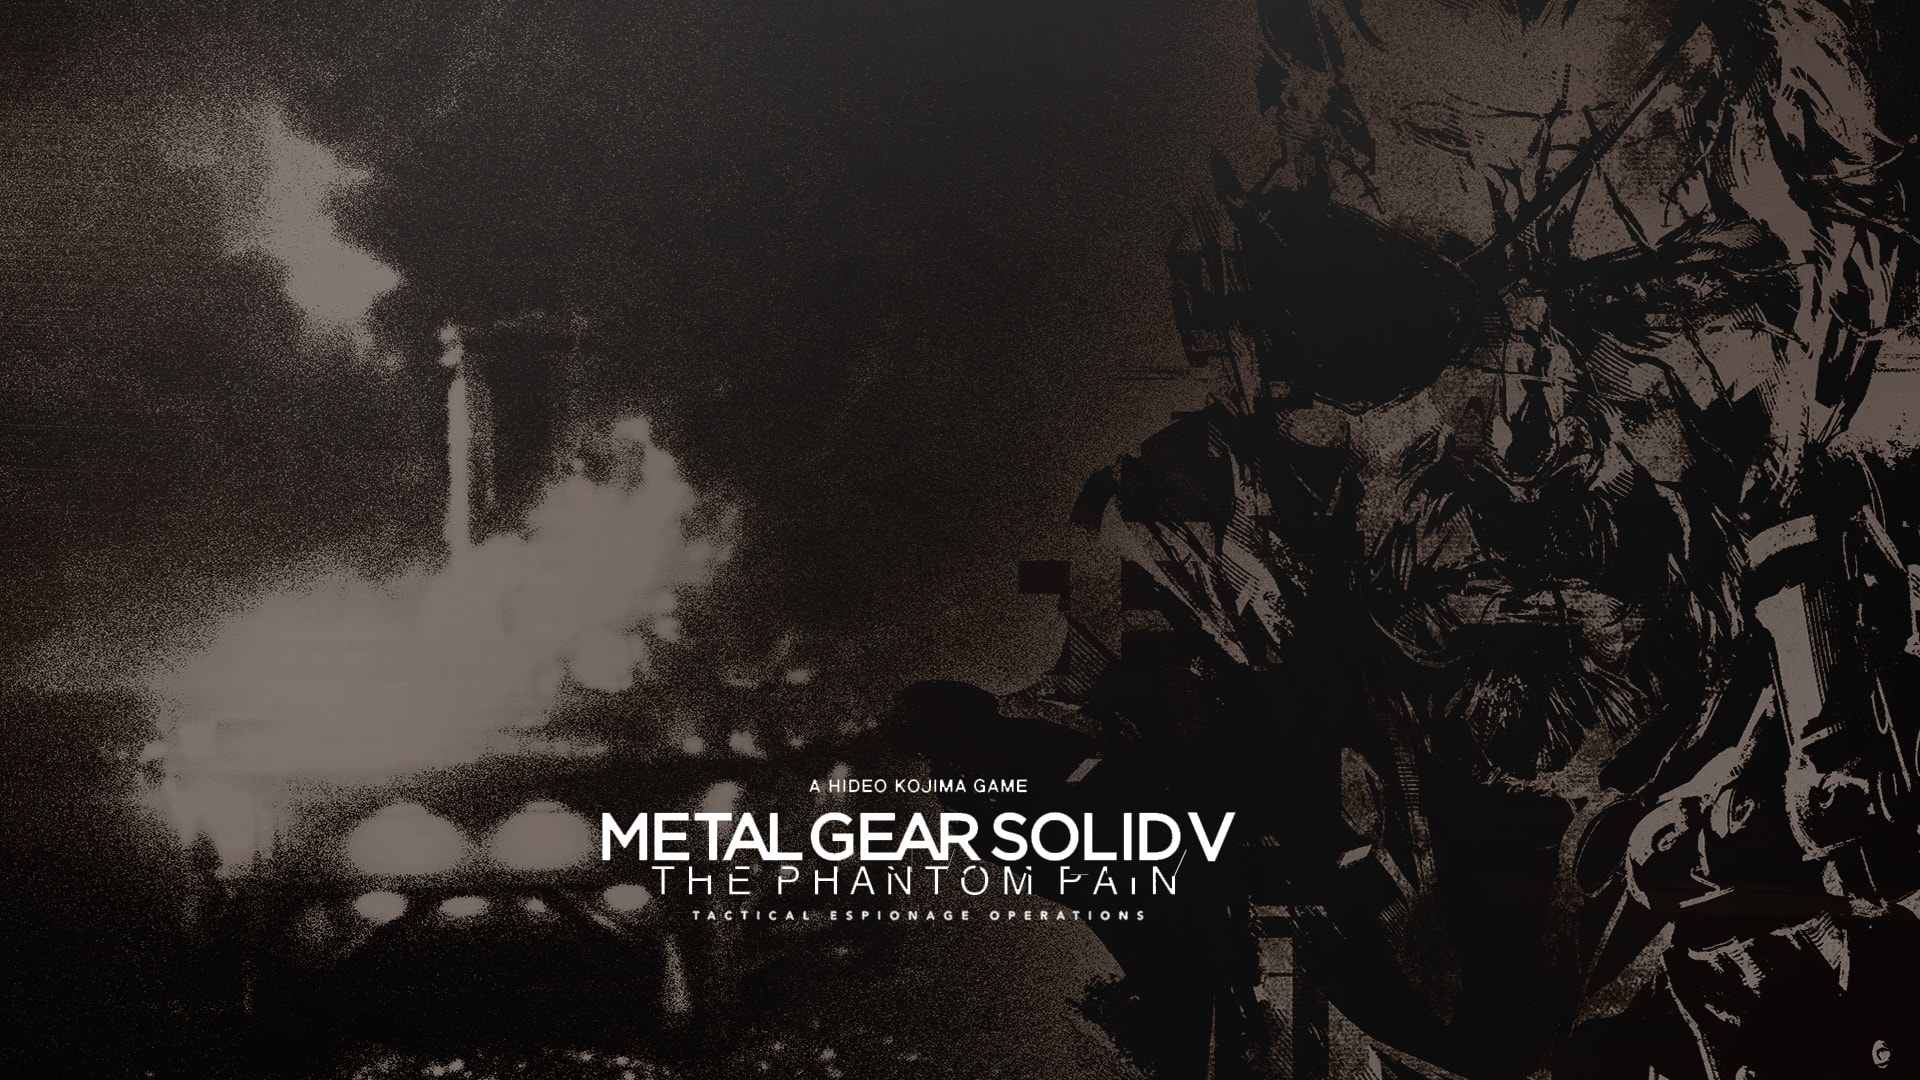 metal gear solid v: the phantom pain hd wallpapers | 7wallpapers